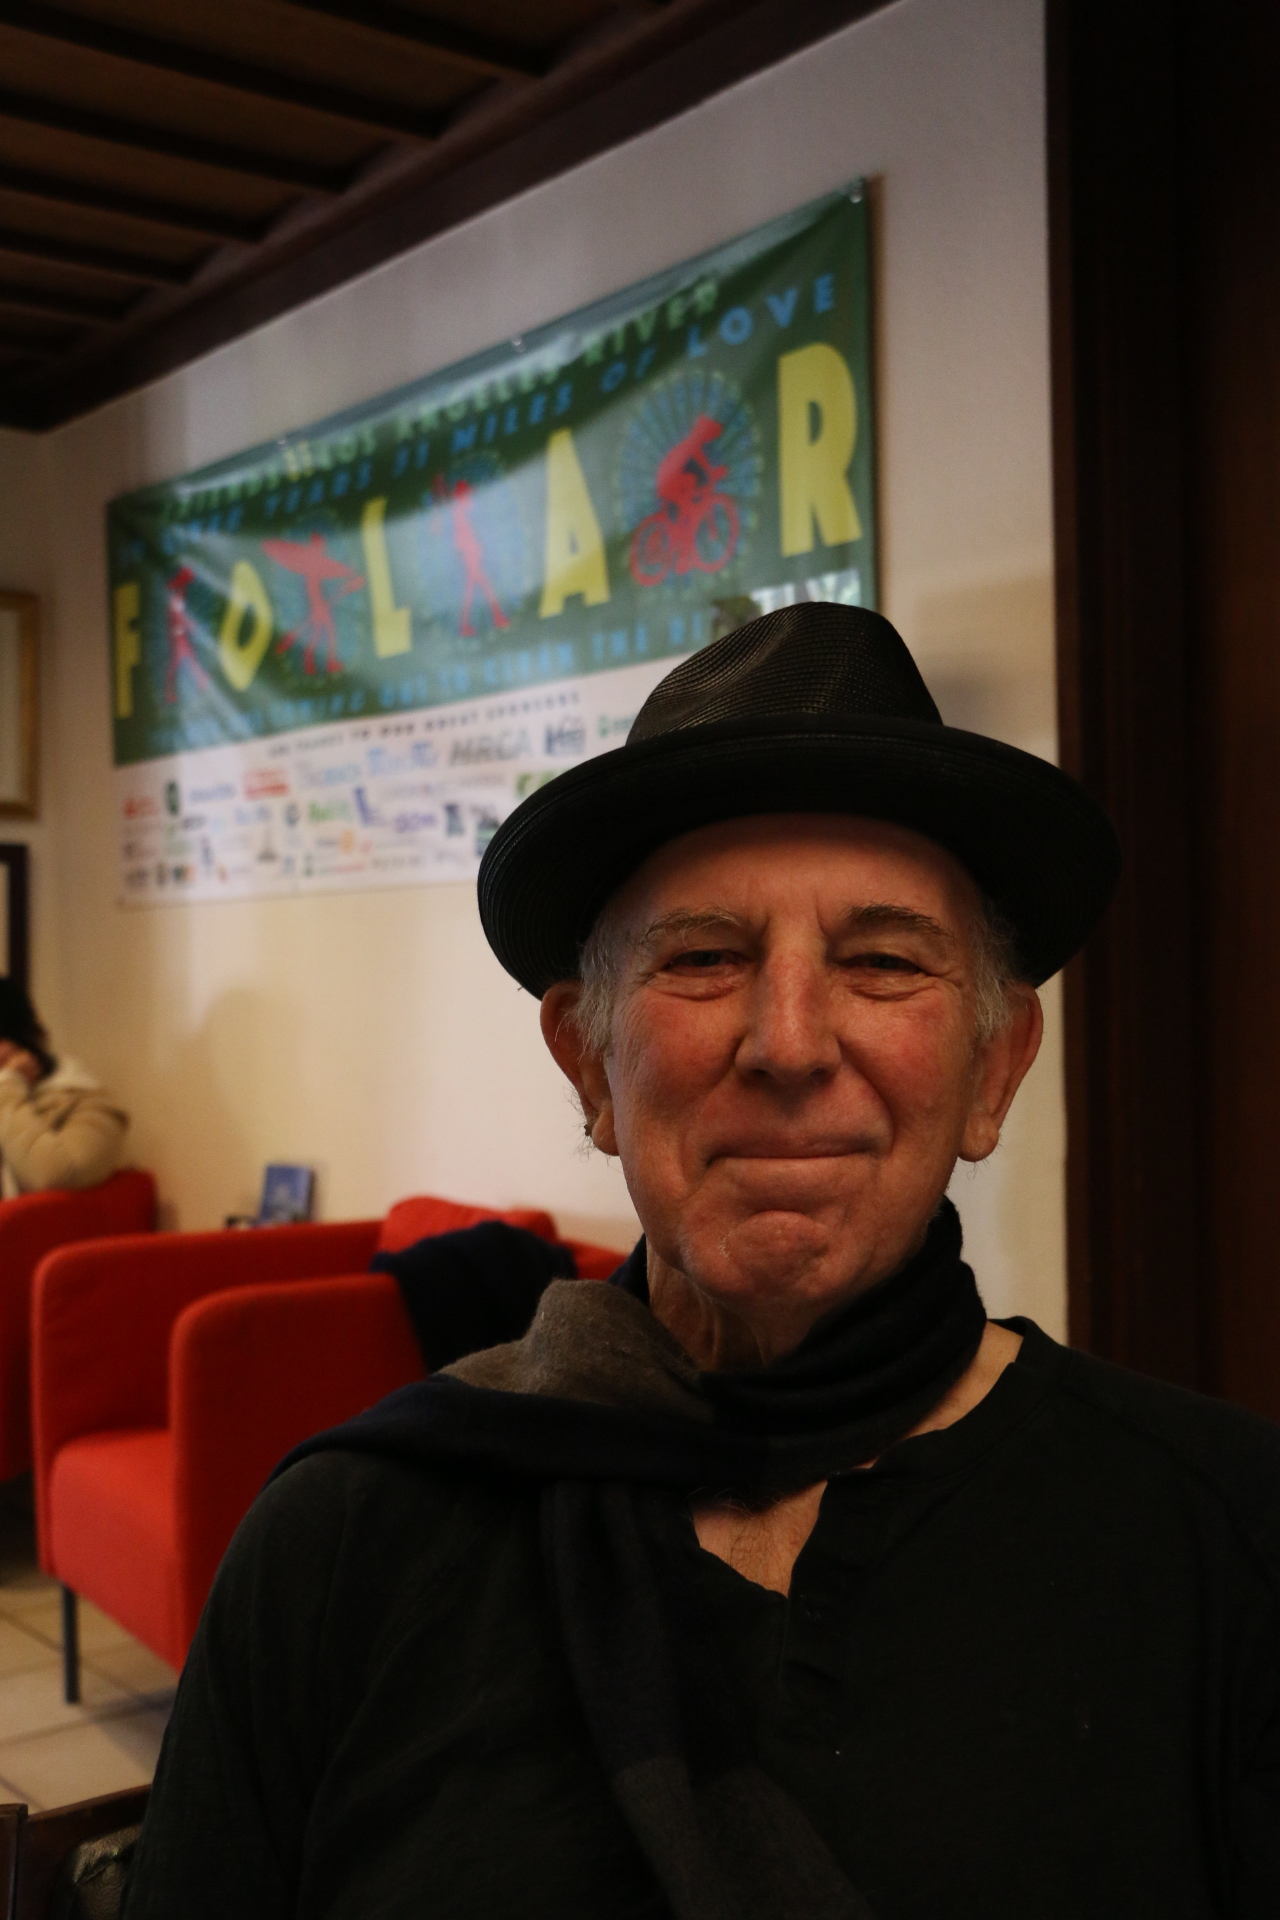 Lewis MacAdams at the FoLAR headquarters in November 2016. Photo credit: Adriana Cargill